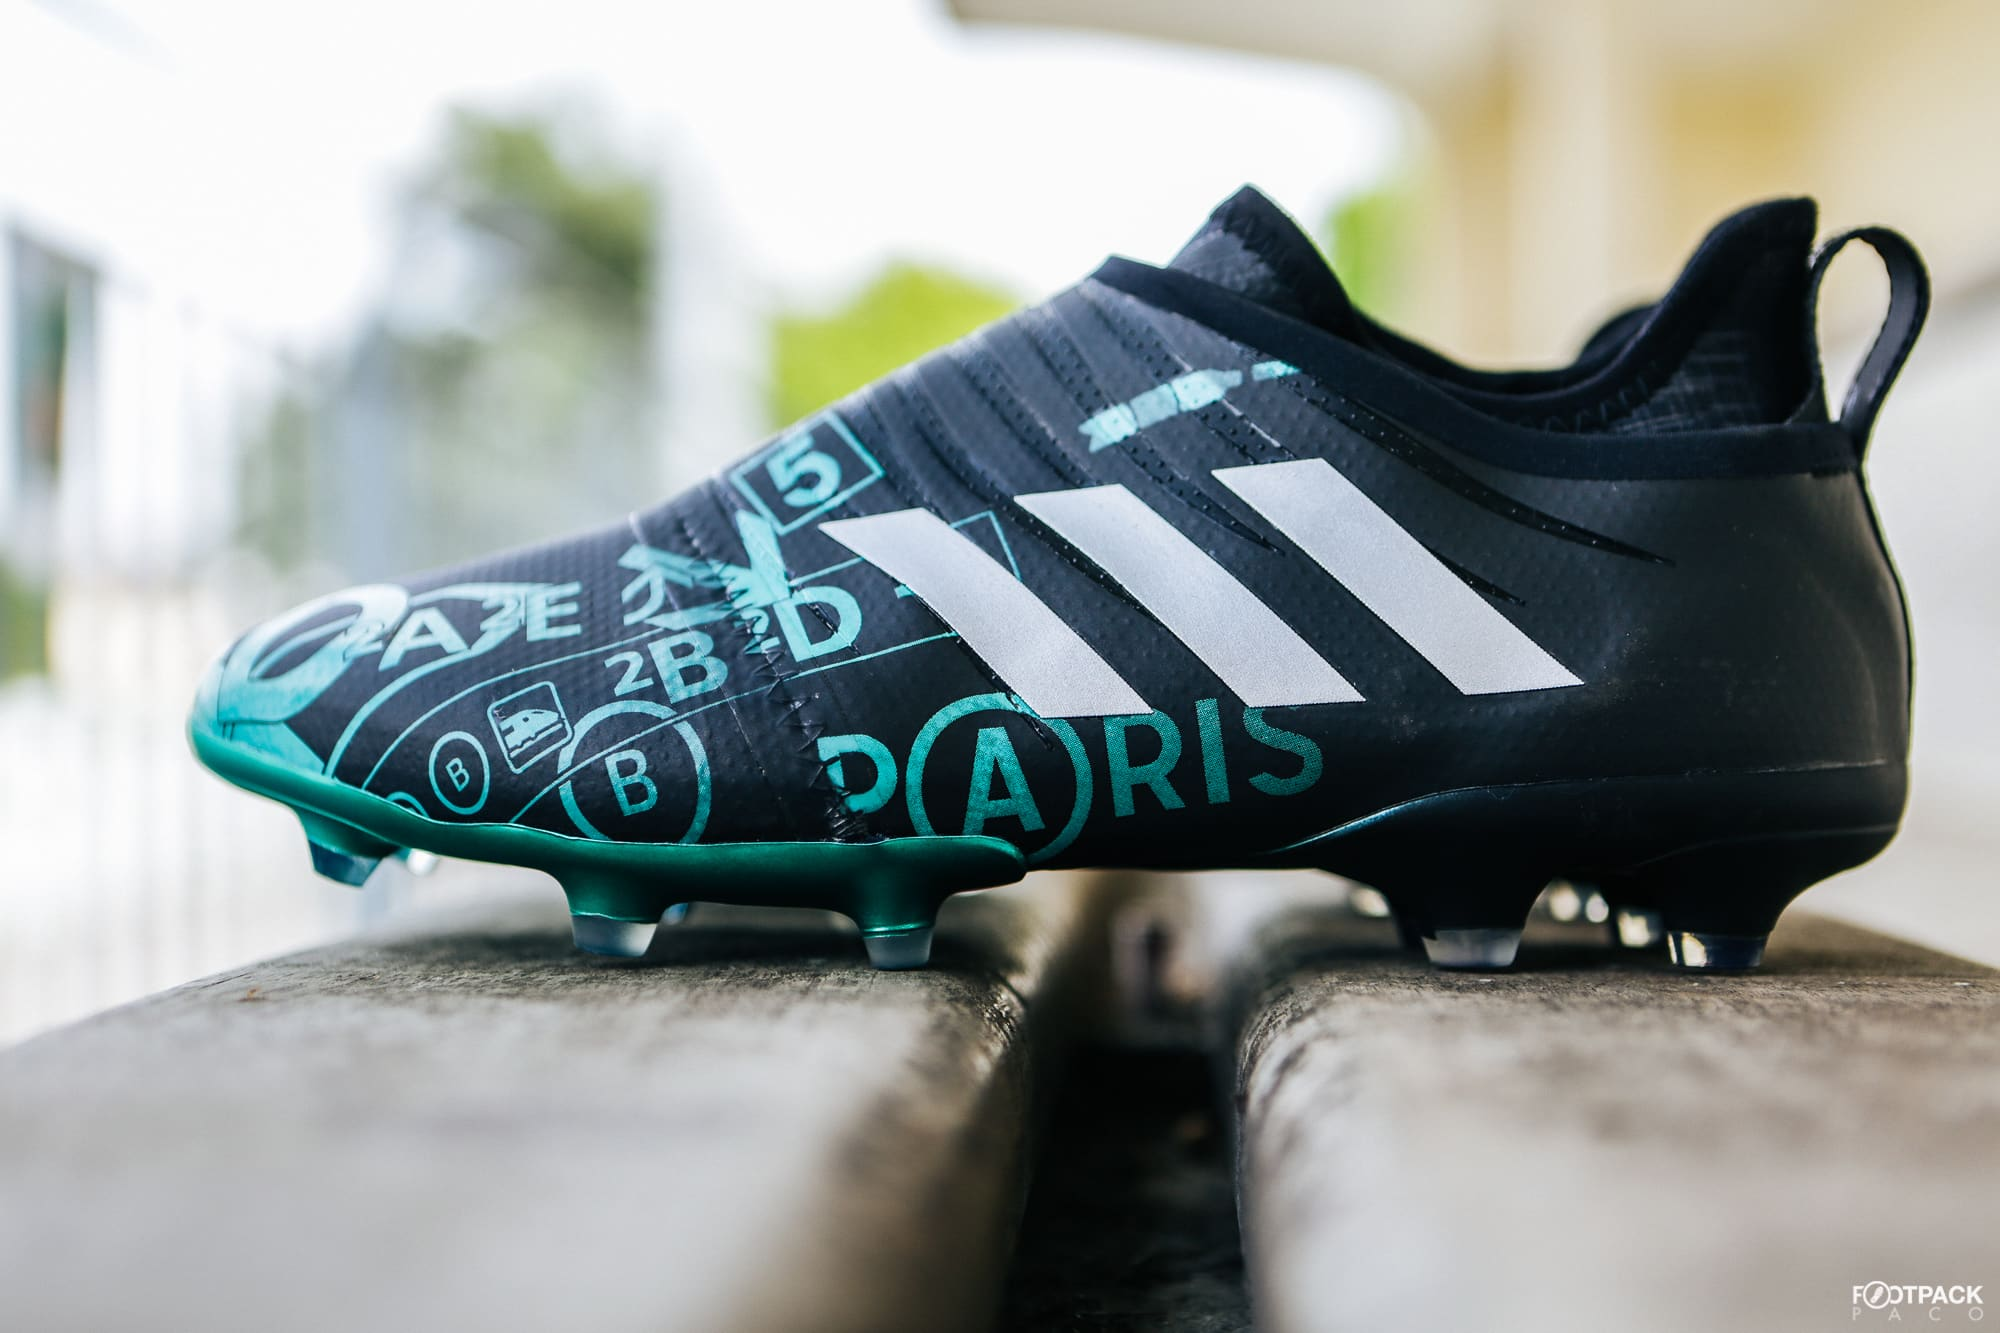 Chaussures-football-adidas-Glitch-skin-Paris-mai-2018-6